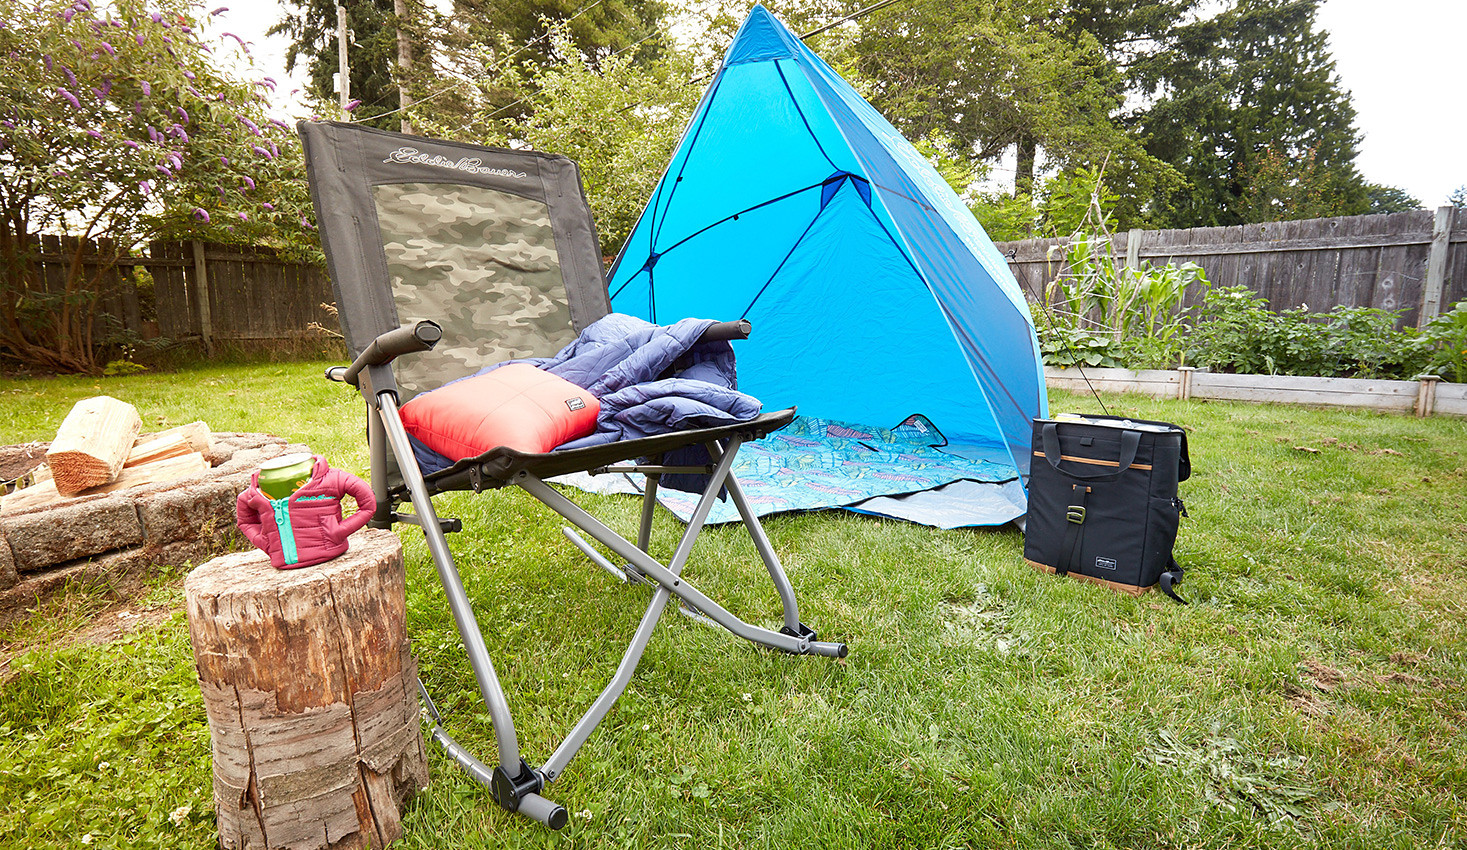 Camp chair sitting beside a tent outdoors